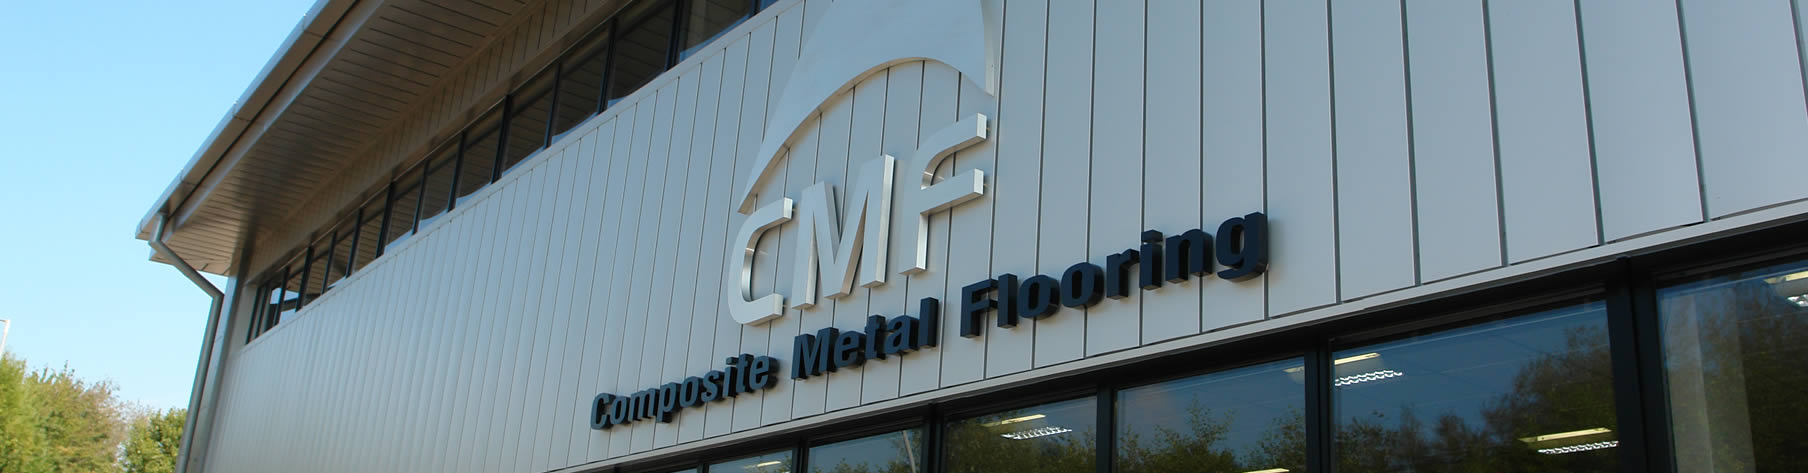 Front view of CMF HQ